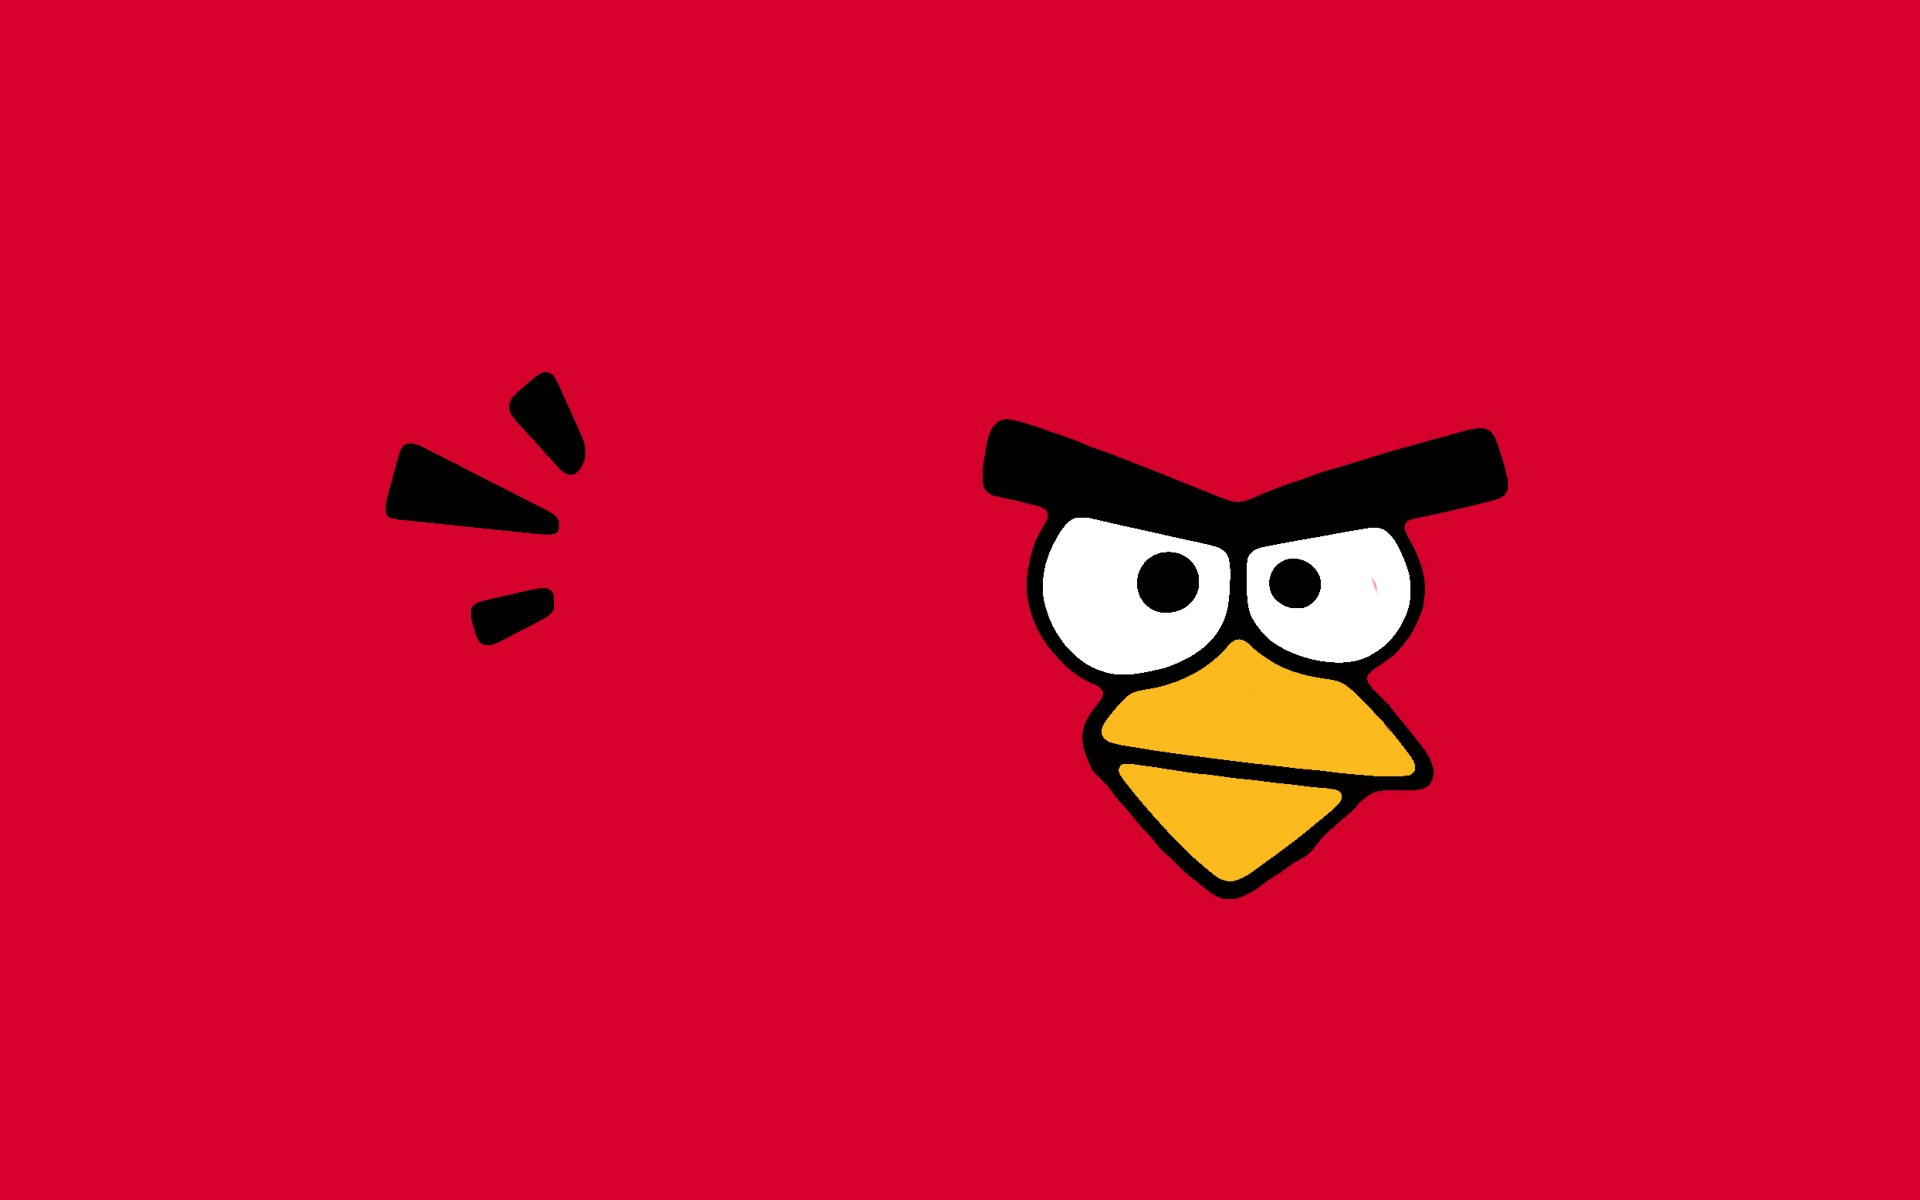 Red Angry Birds Wallpaper. Angry Birds Golden Egg